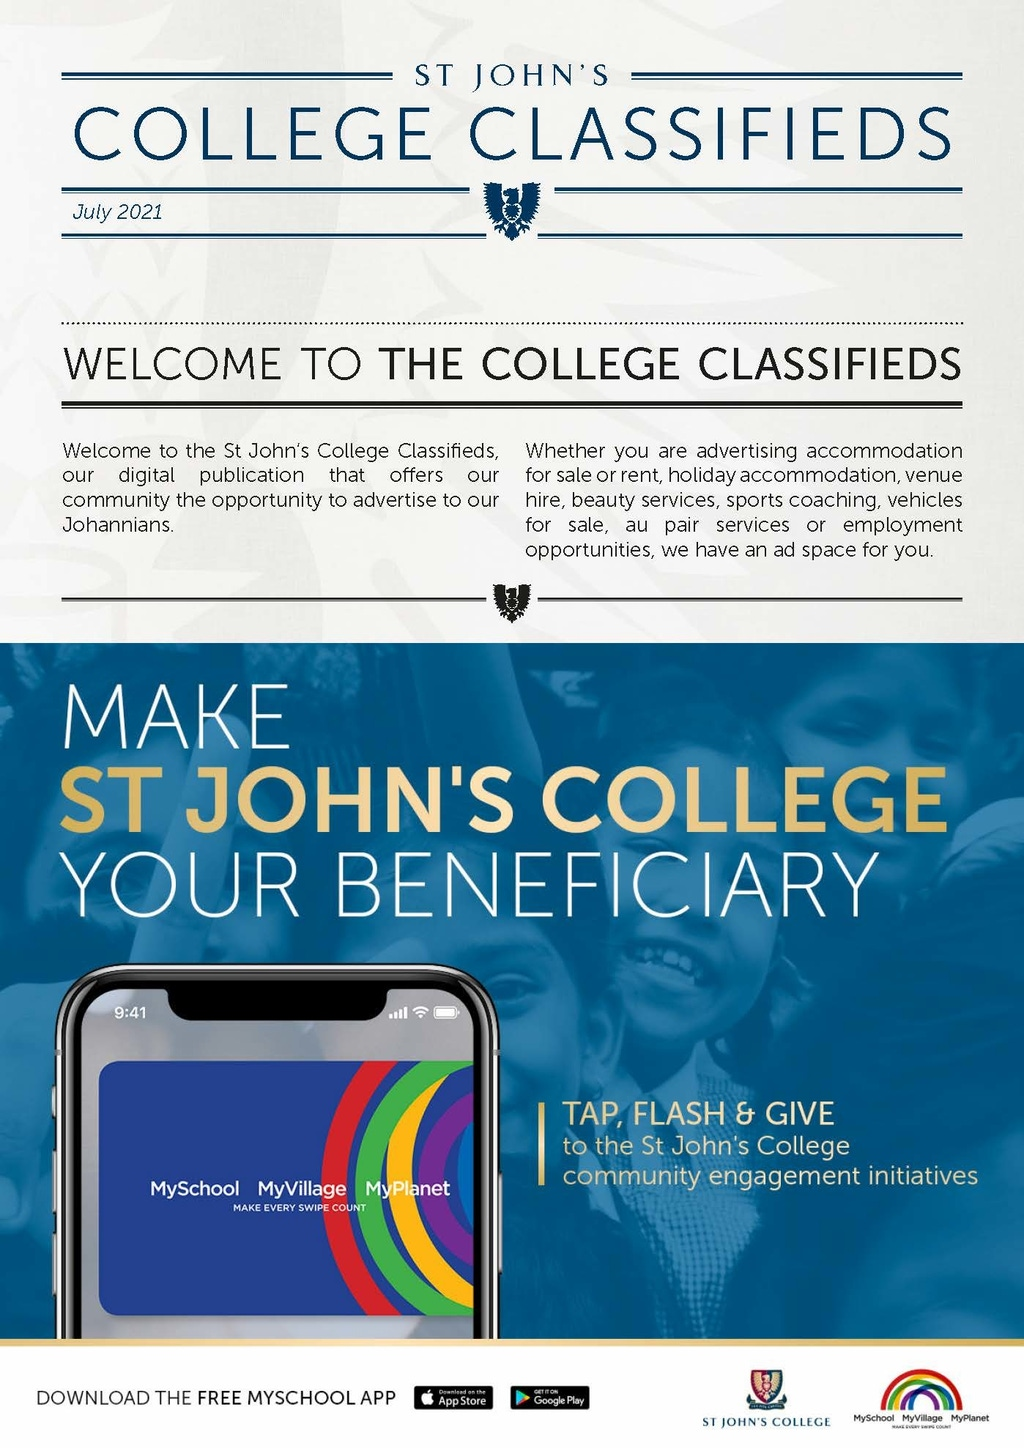 College Classifieds July 2021